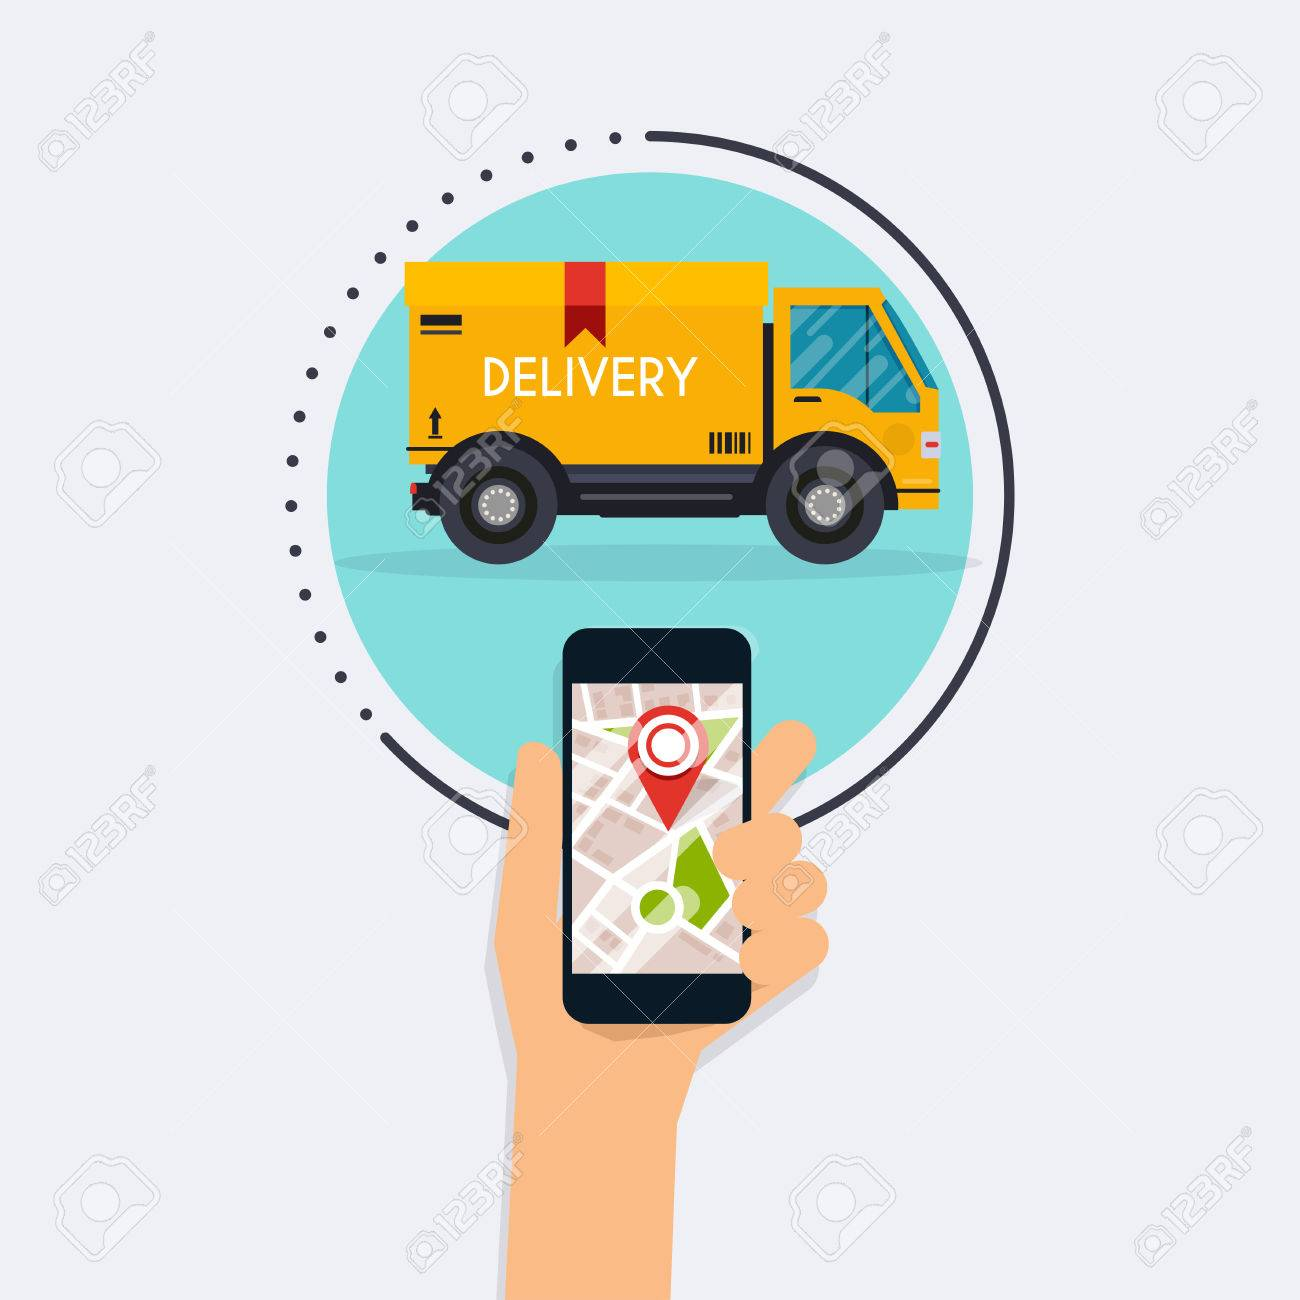 Hand holding mobile smart phone with mobile app delivery tracking